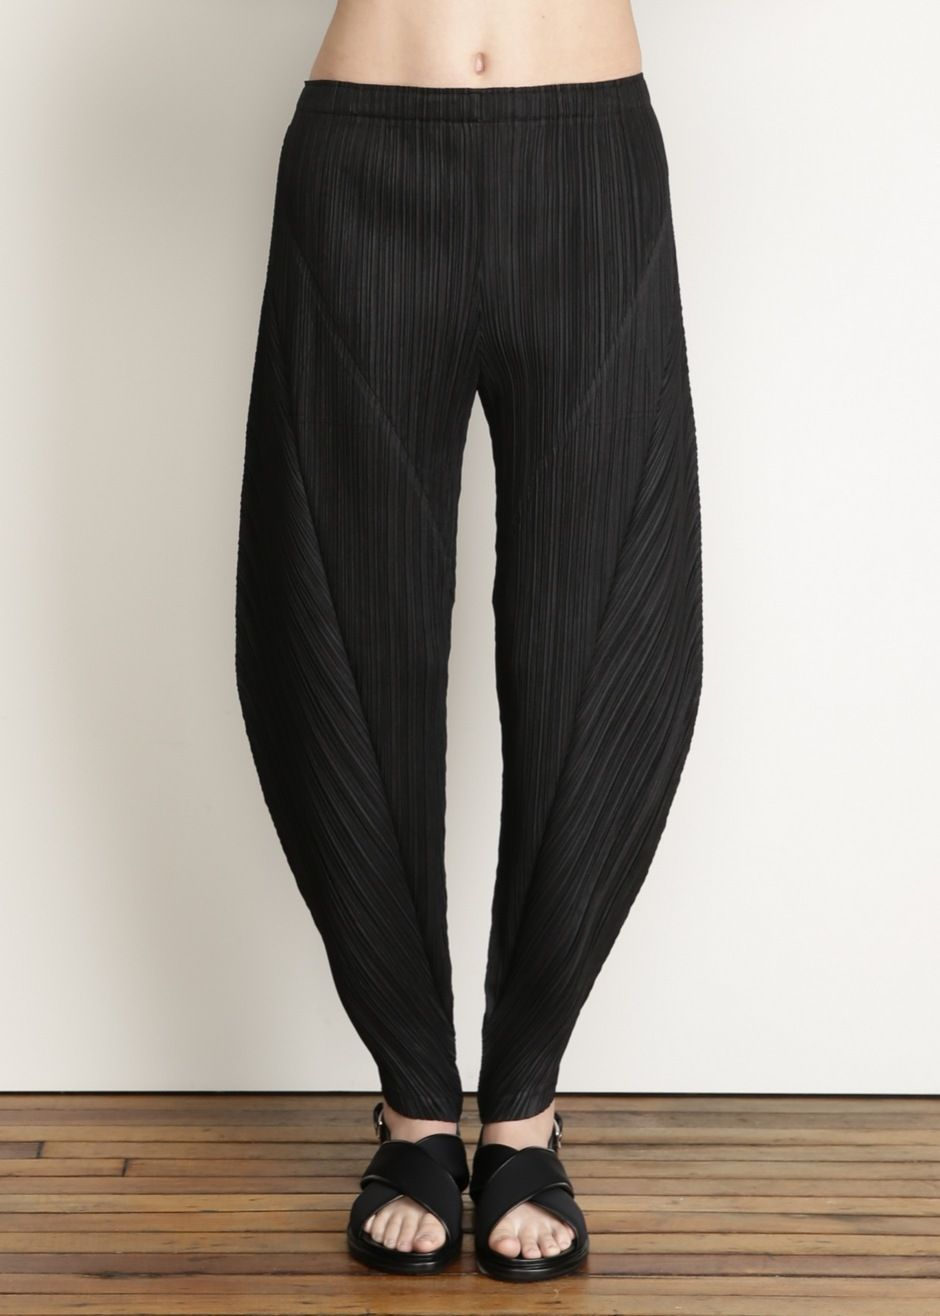 78d6fac76 Purveyor of beautifully designed and thoughtfully curated fashion and  objects. Issey Miyake PLEATS PLEASE Full Pant (Black) ...